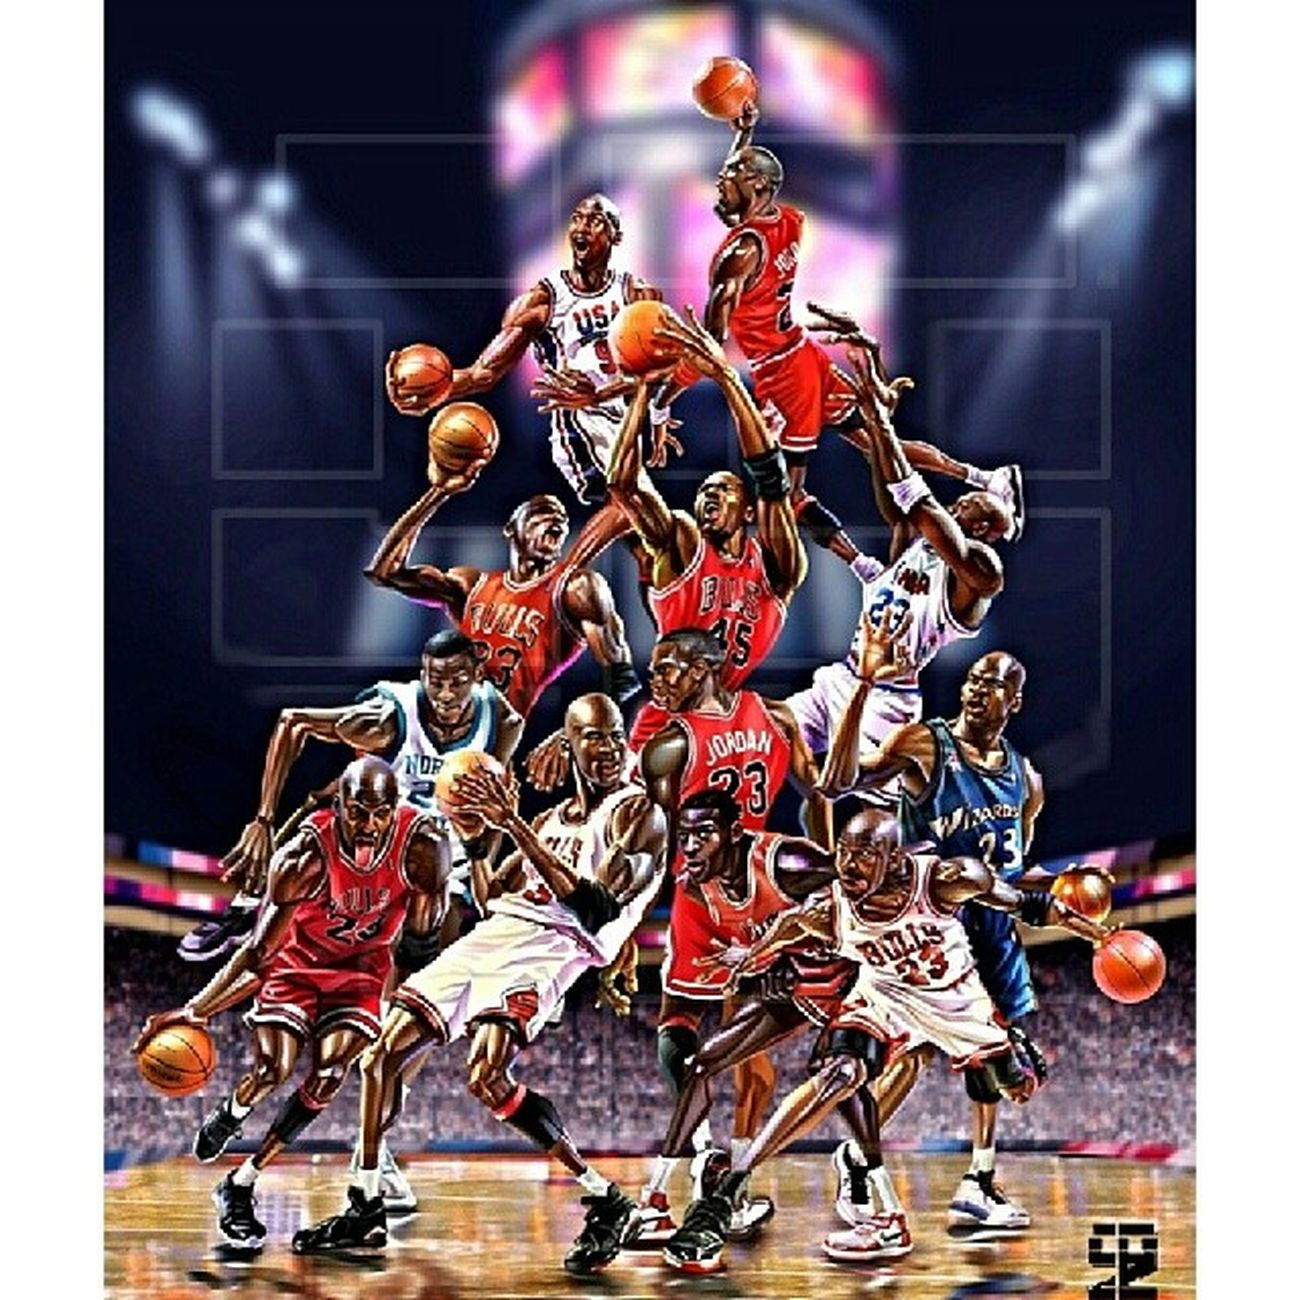 Its a king's birthday! HappyBirthday King Michaeljordan . The original Superman :)